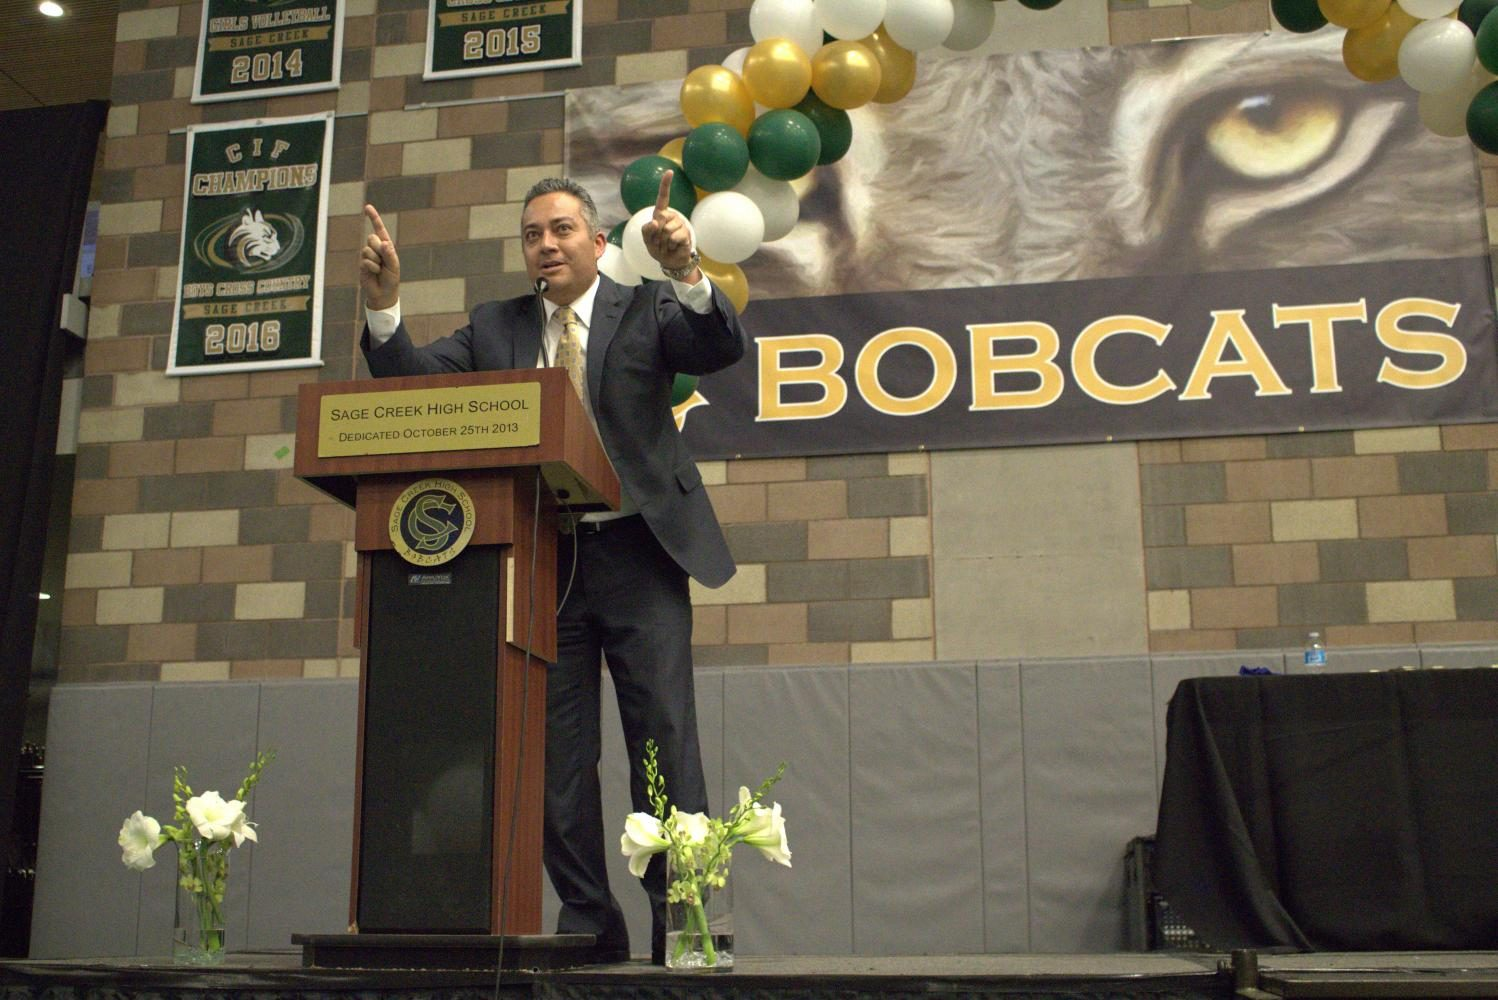 Principal+Cesar+Morales+greets+the+festive+crowd+on+senior+awards+night.